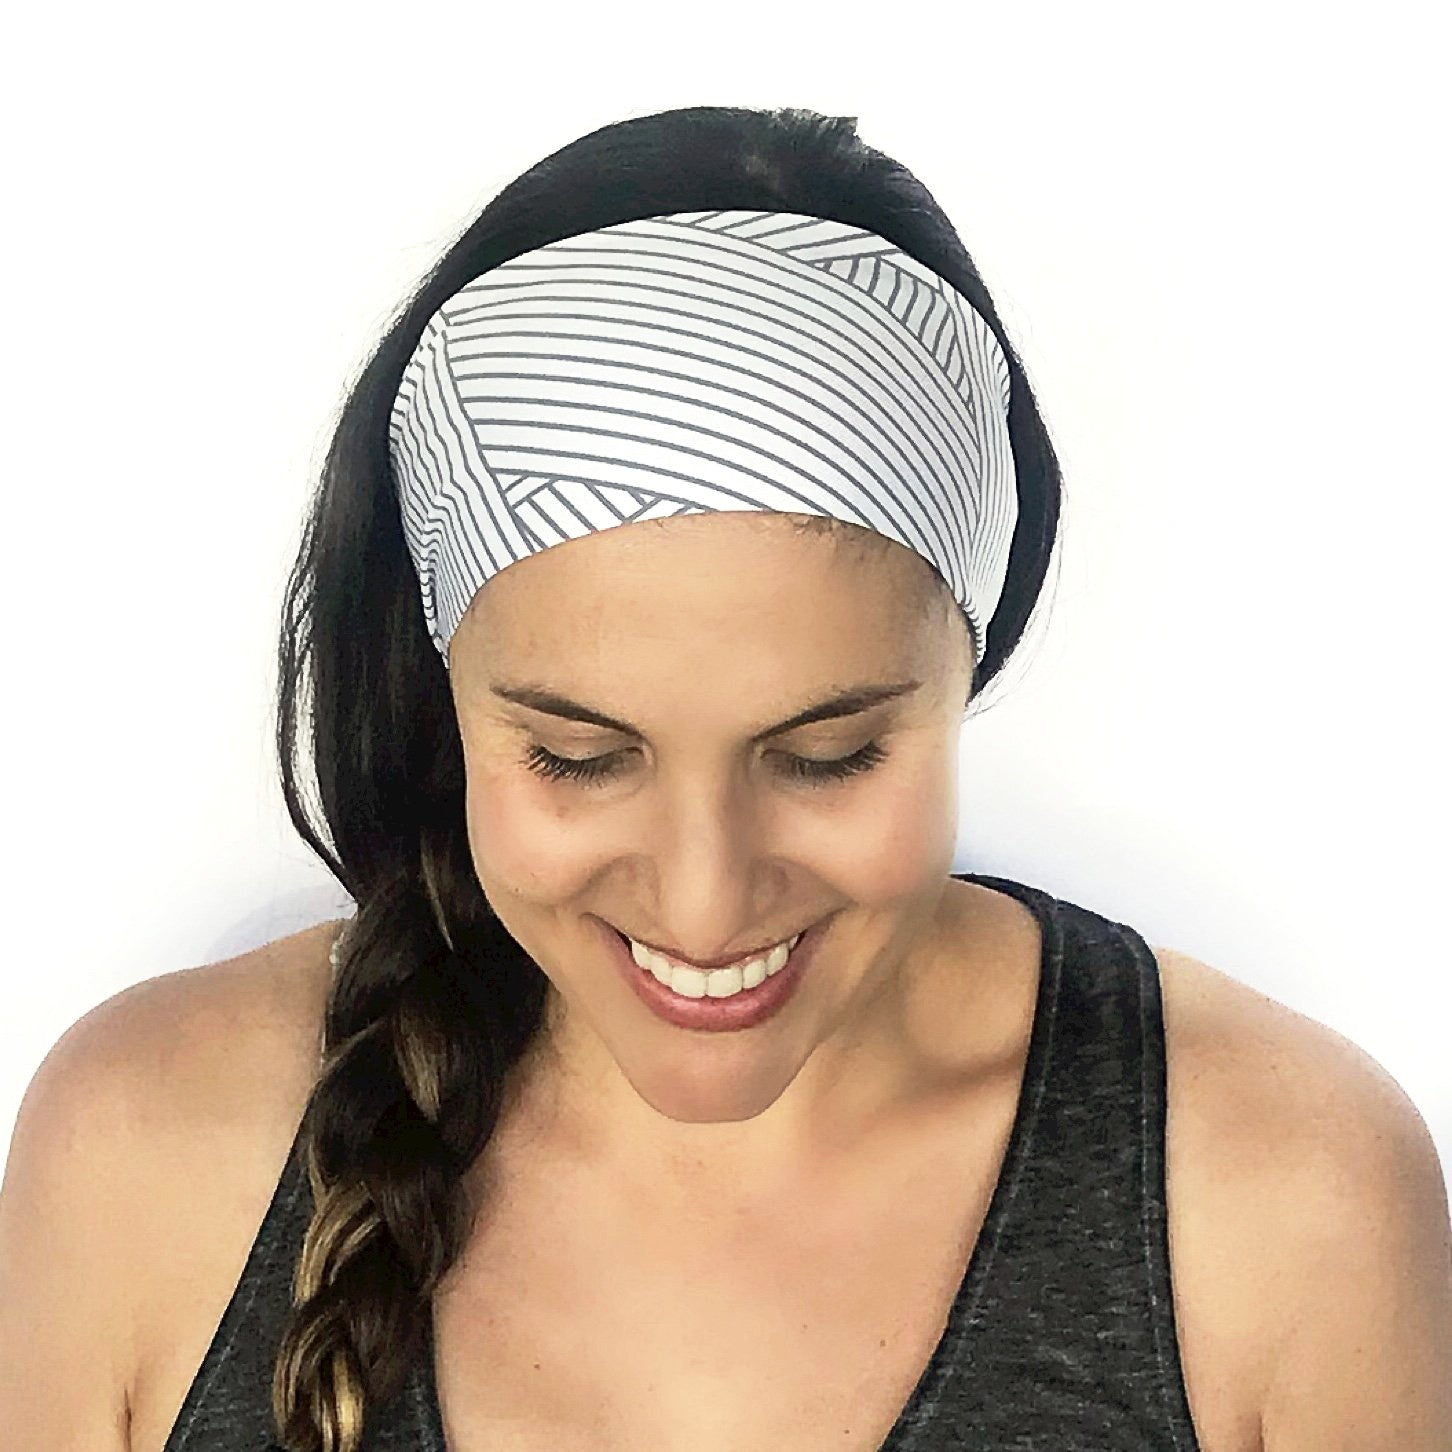 Walk The Line Workout Headband